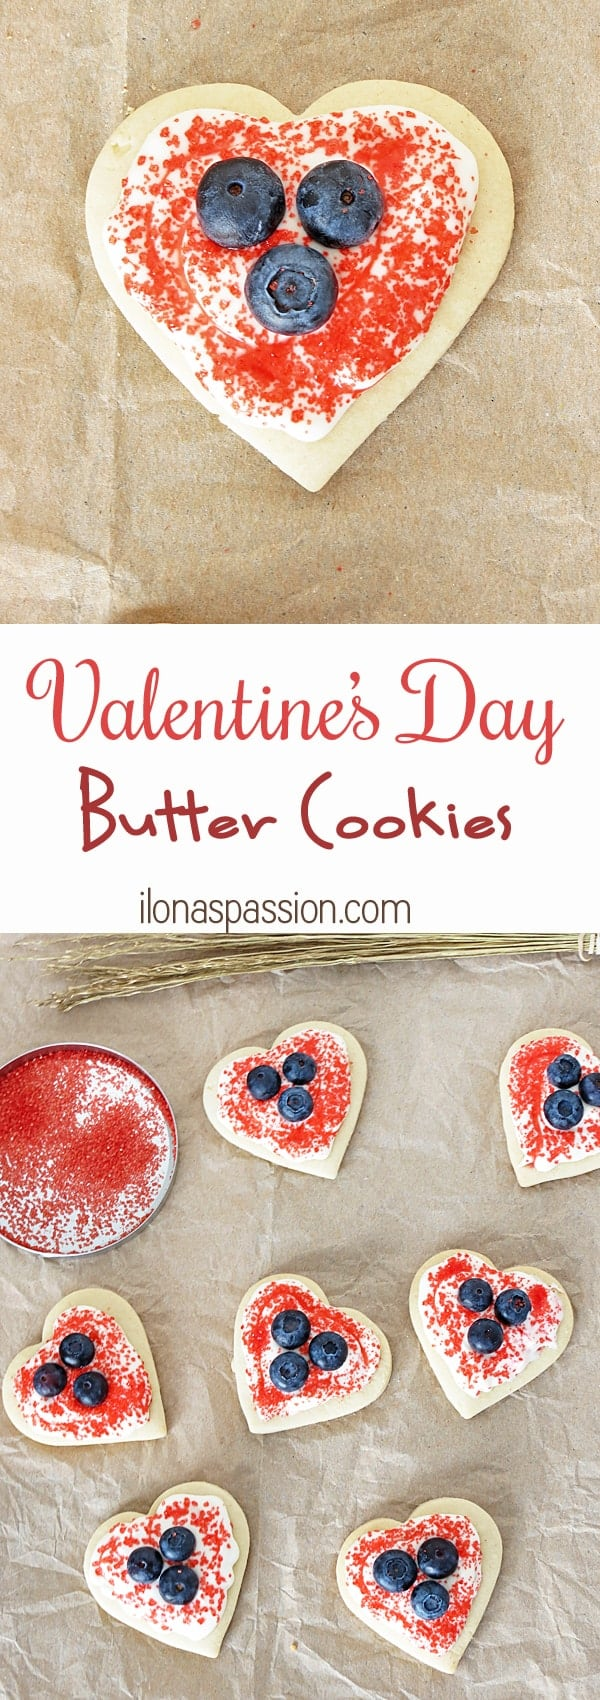 Valentine's Day Butter Cookies with cream cheese frosting as Gift Idea by ilonaspassion.com